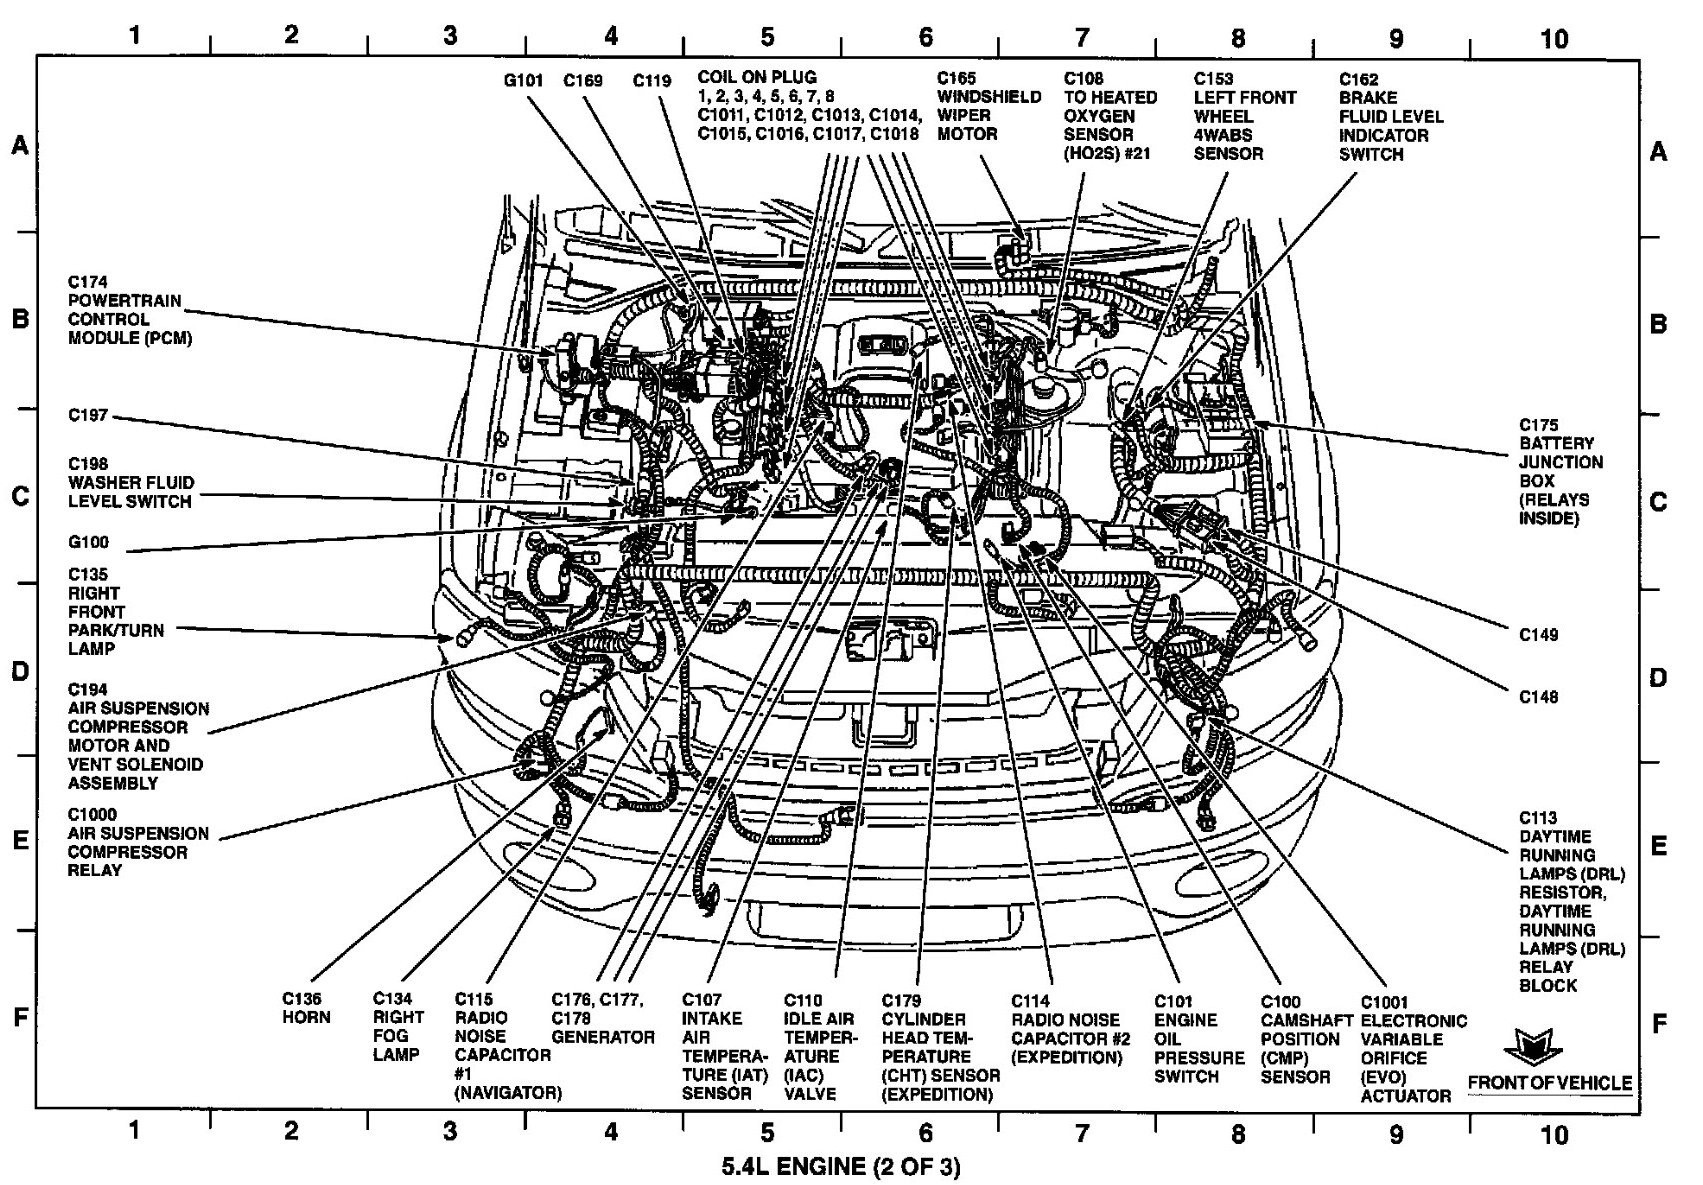 2005 Kia sorento Engine Diagram 2008 Bmw 328i Engine Diagram Bmw Wiring  Diagrams Instructions Of 2005